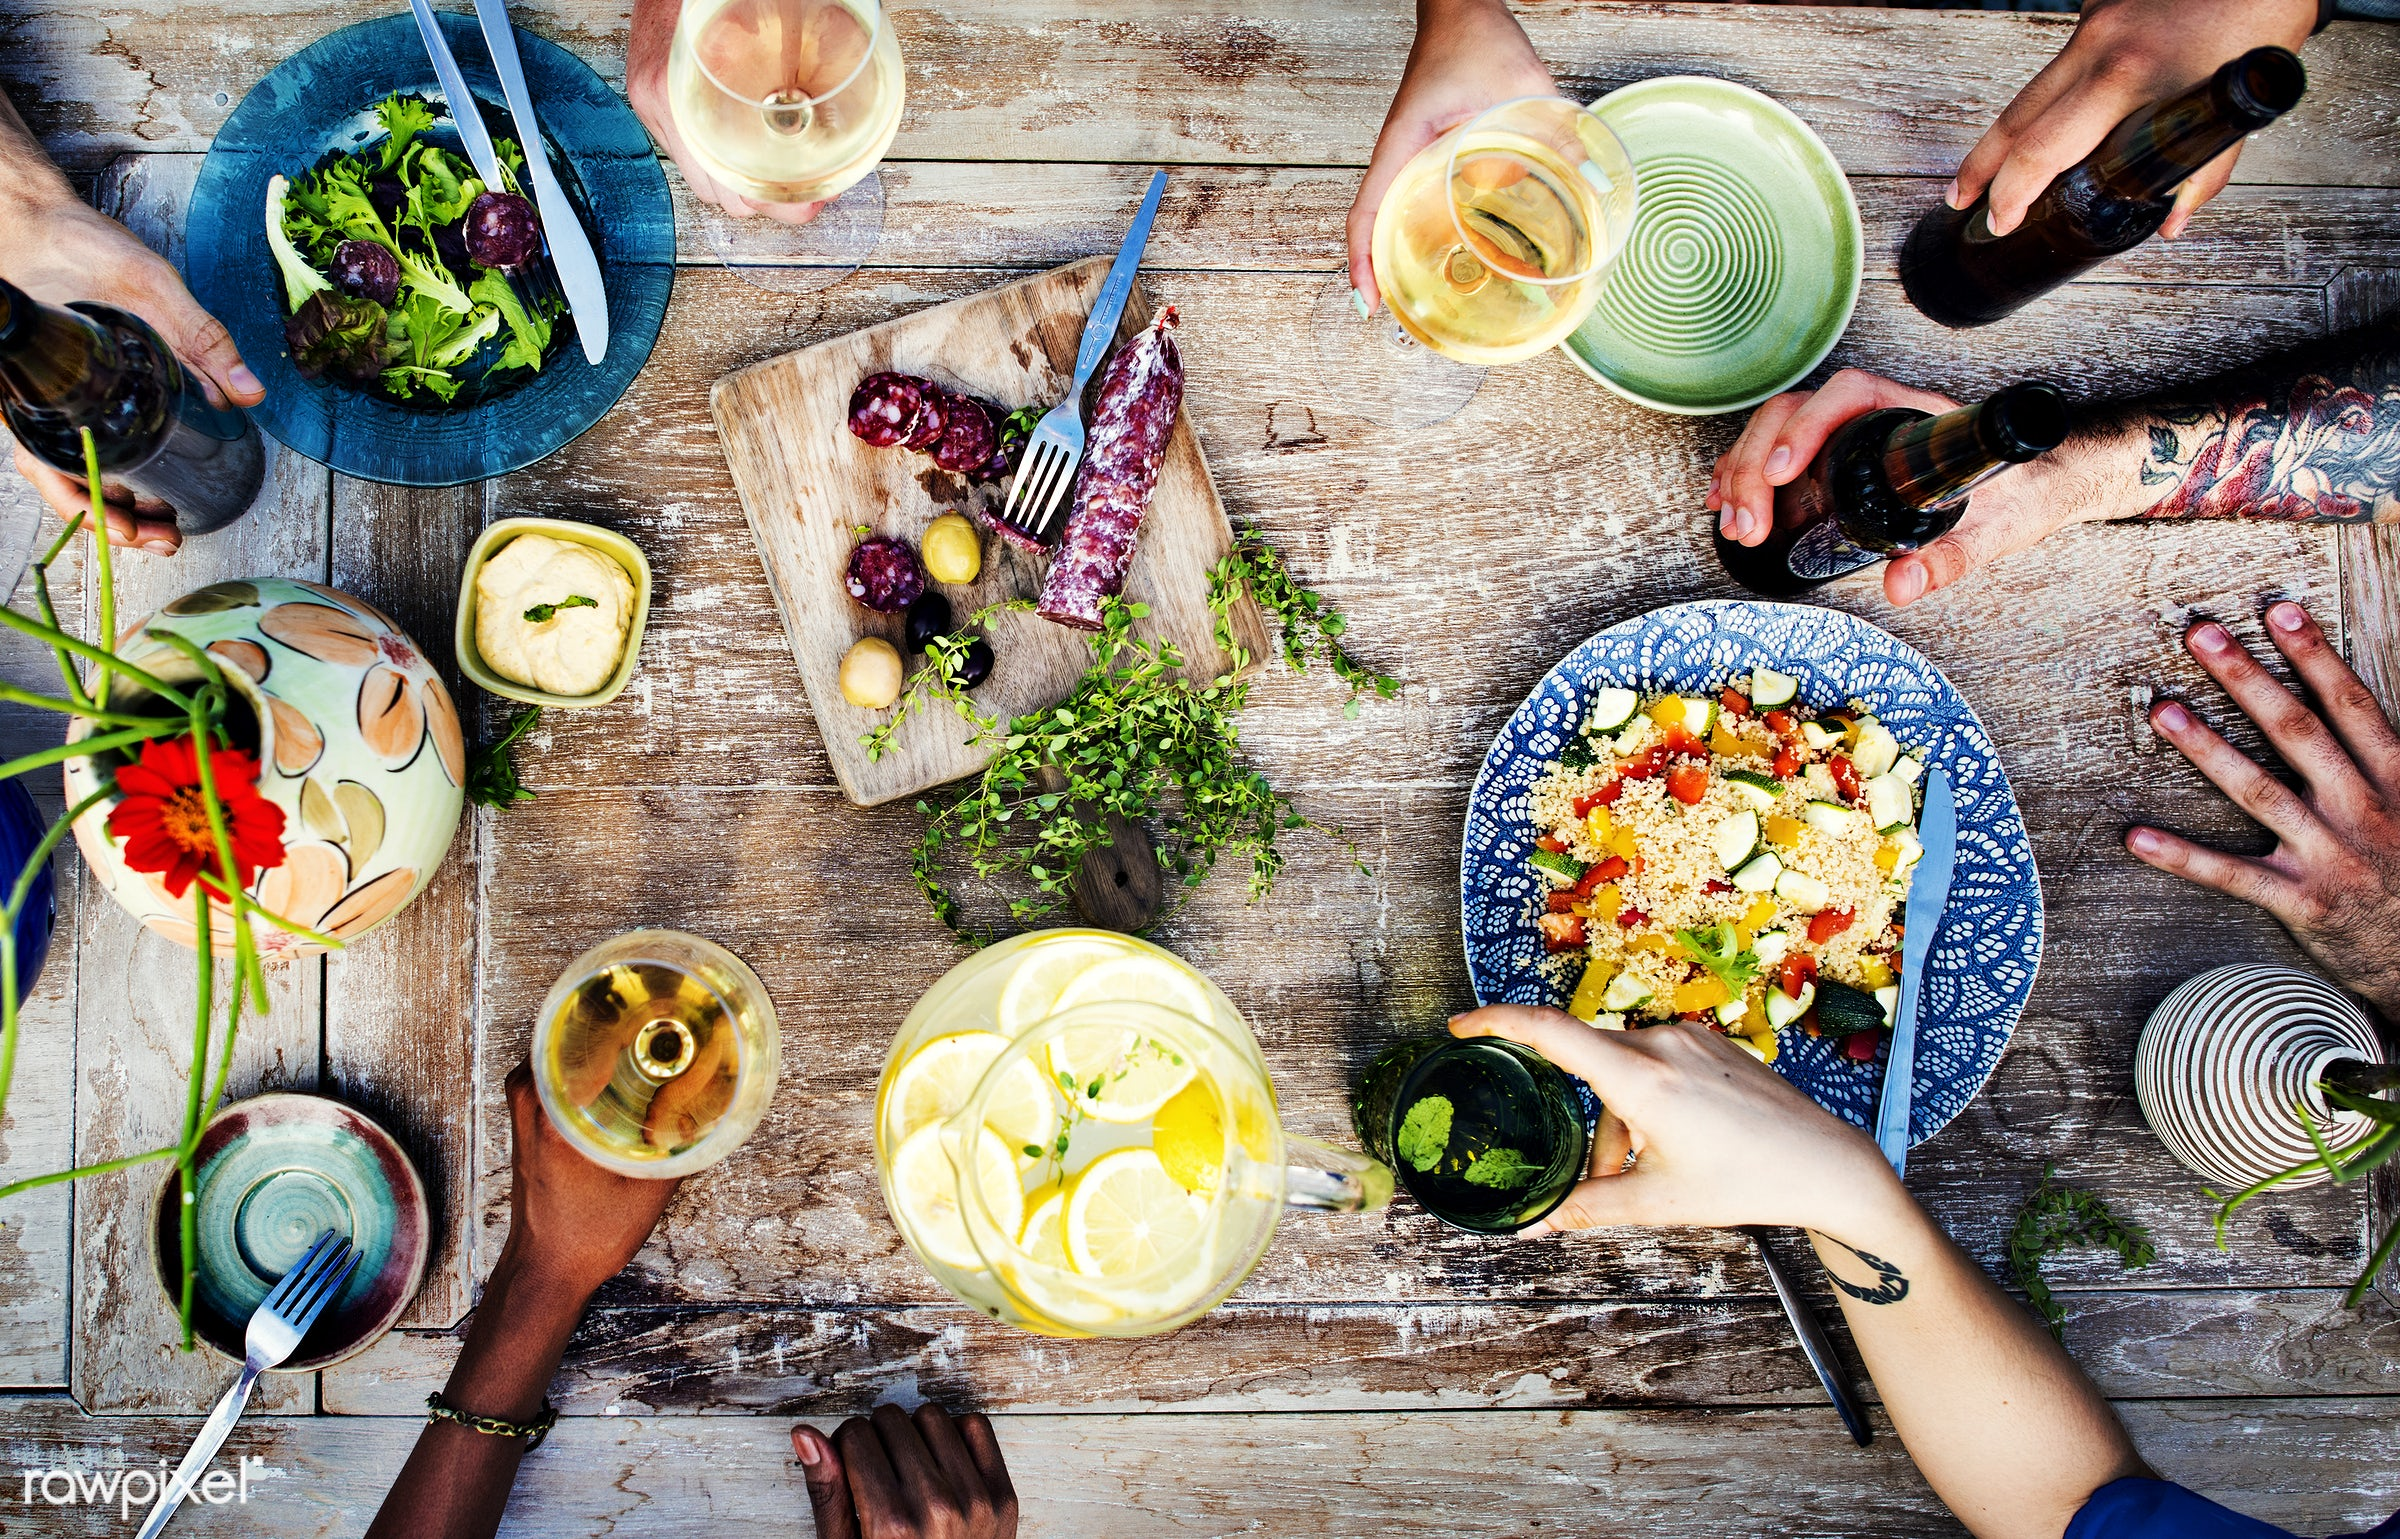 Summer party with food and drinks - kitchen, aerial view, allspice, beer, beverage, bowl, champagne, color, colorful, cook,...